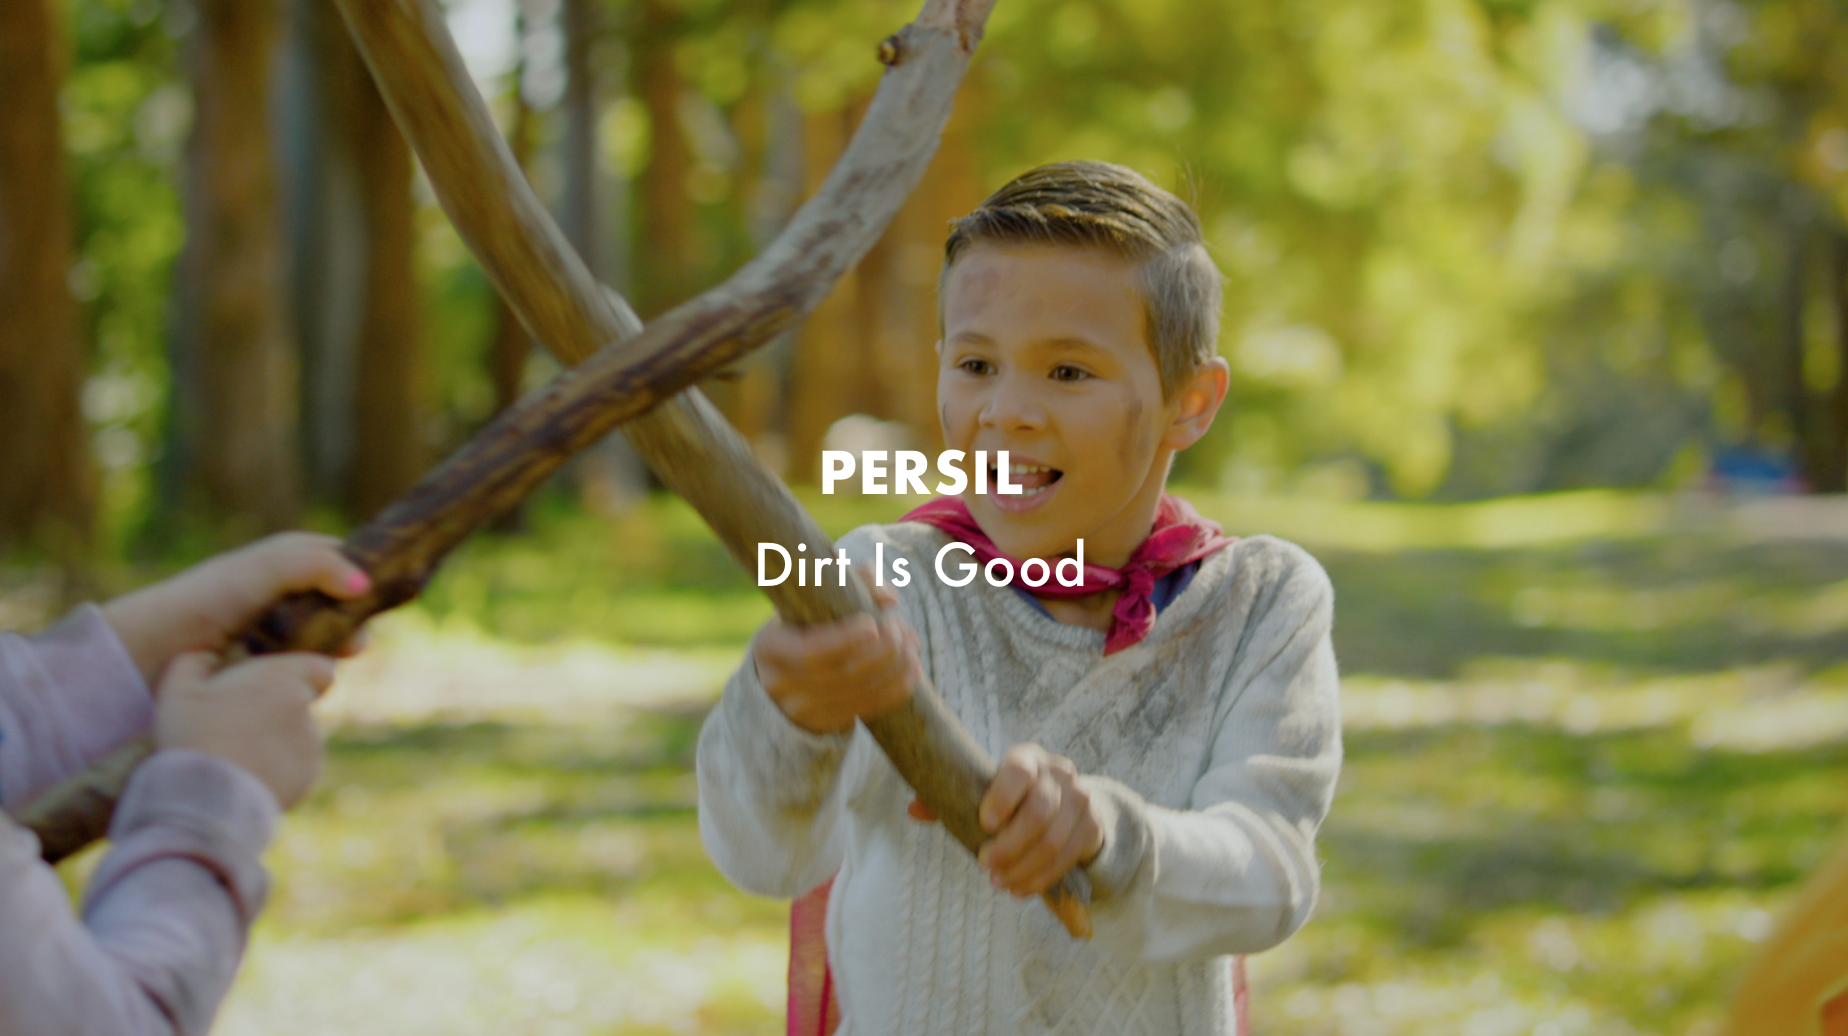 Persil - Dirt Is Good